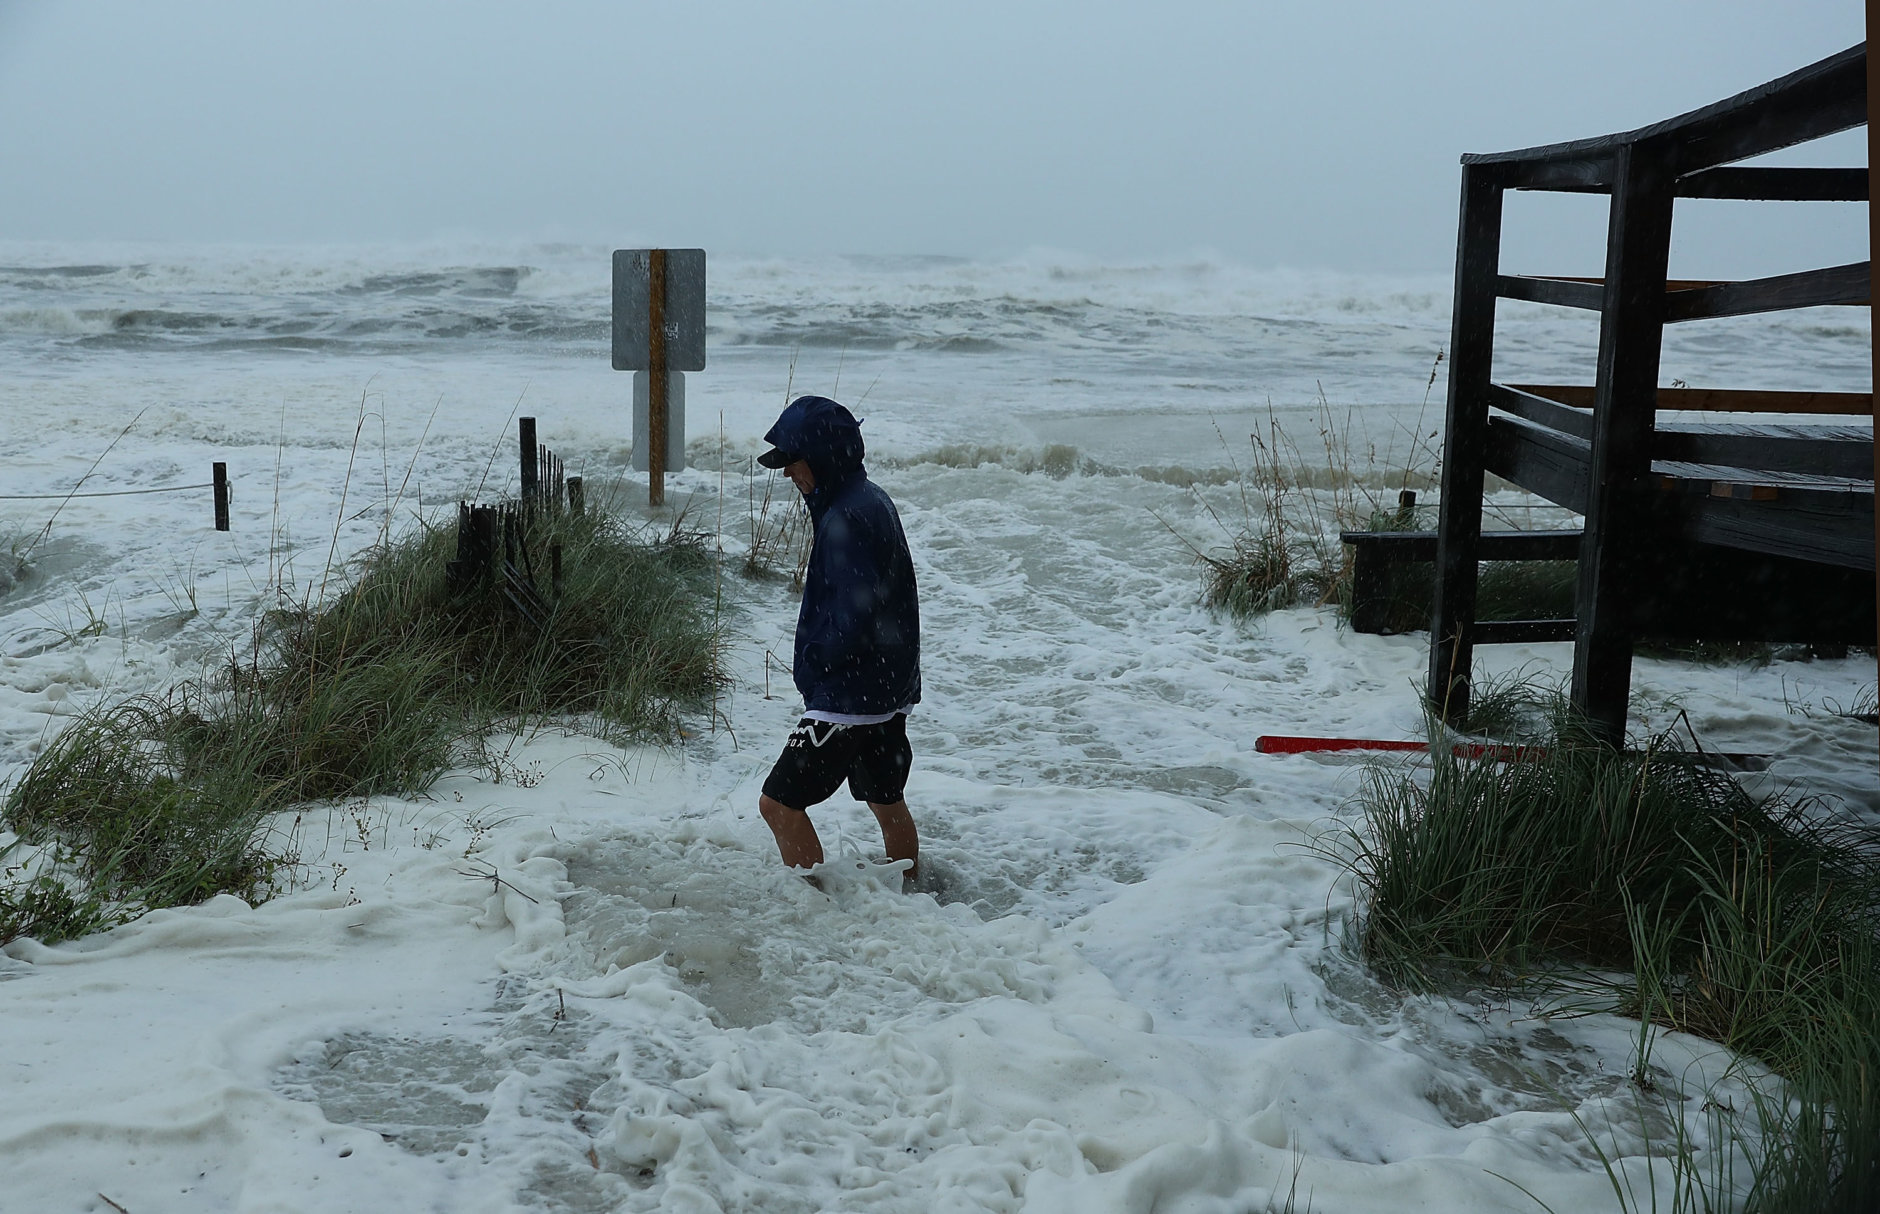 PANAMA CITY BEACH, FL - OCTOBER 10:  Cameron Sadowski walks along where waves are crashing onto the beach as the outer bands of  hurricane Michael arrive on October 10, 2018 in Panama City Beach, Florida. The hurricane is forecast to hit the Florida Panhandle at a possible category 4 storm.  (Photo by Joe Raedle/Getty Images)